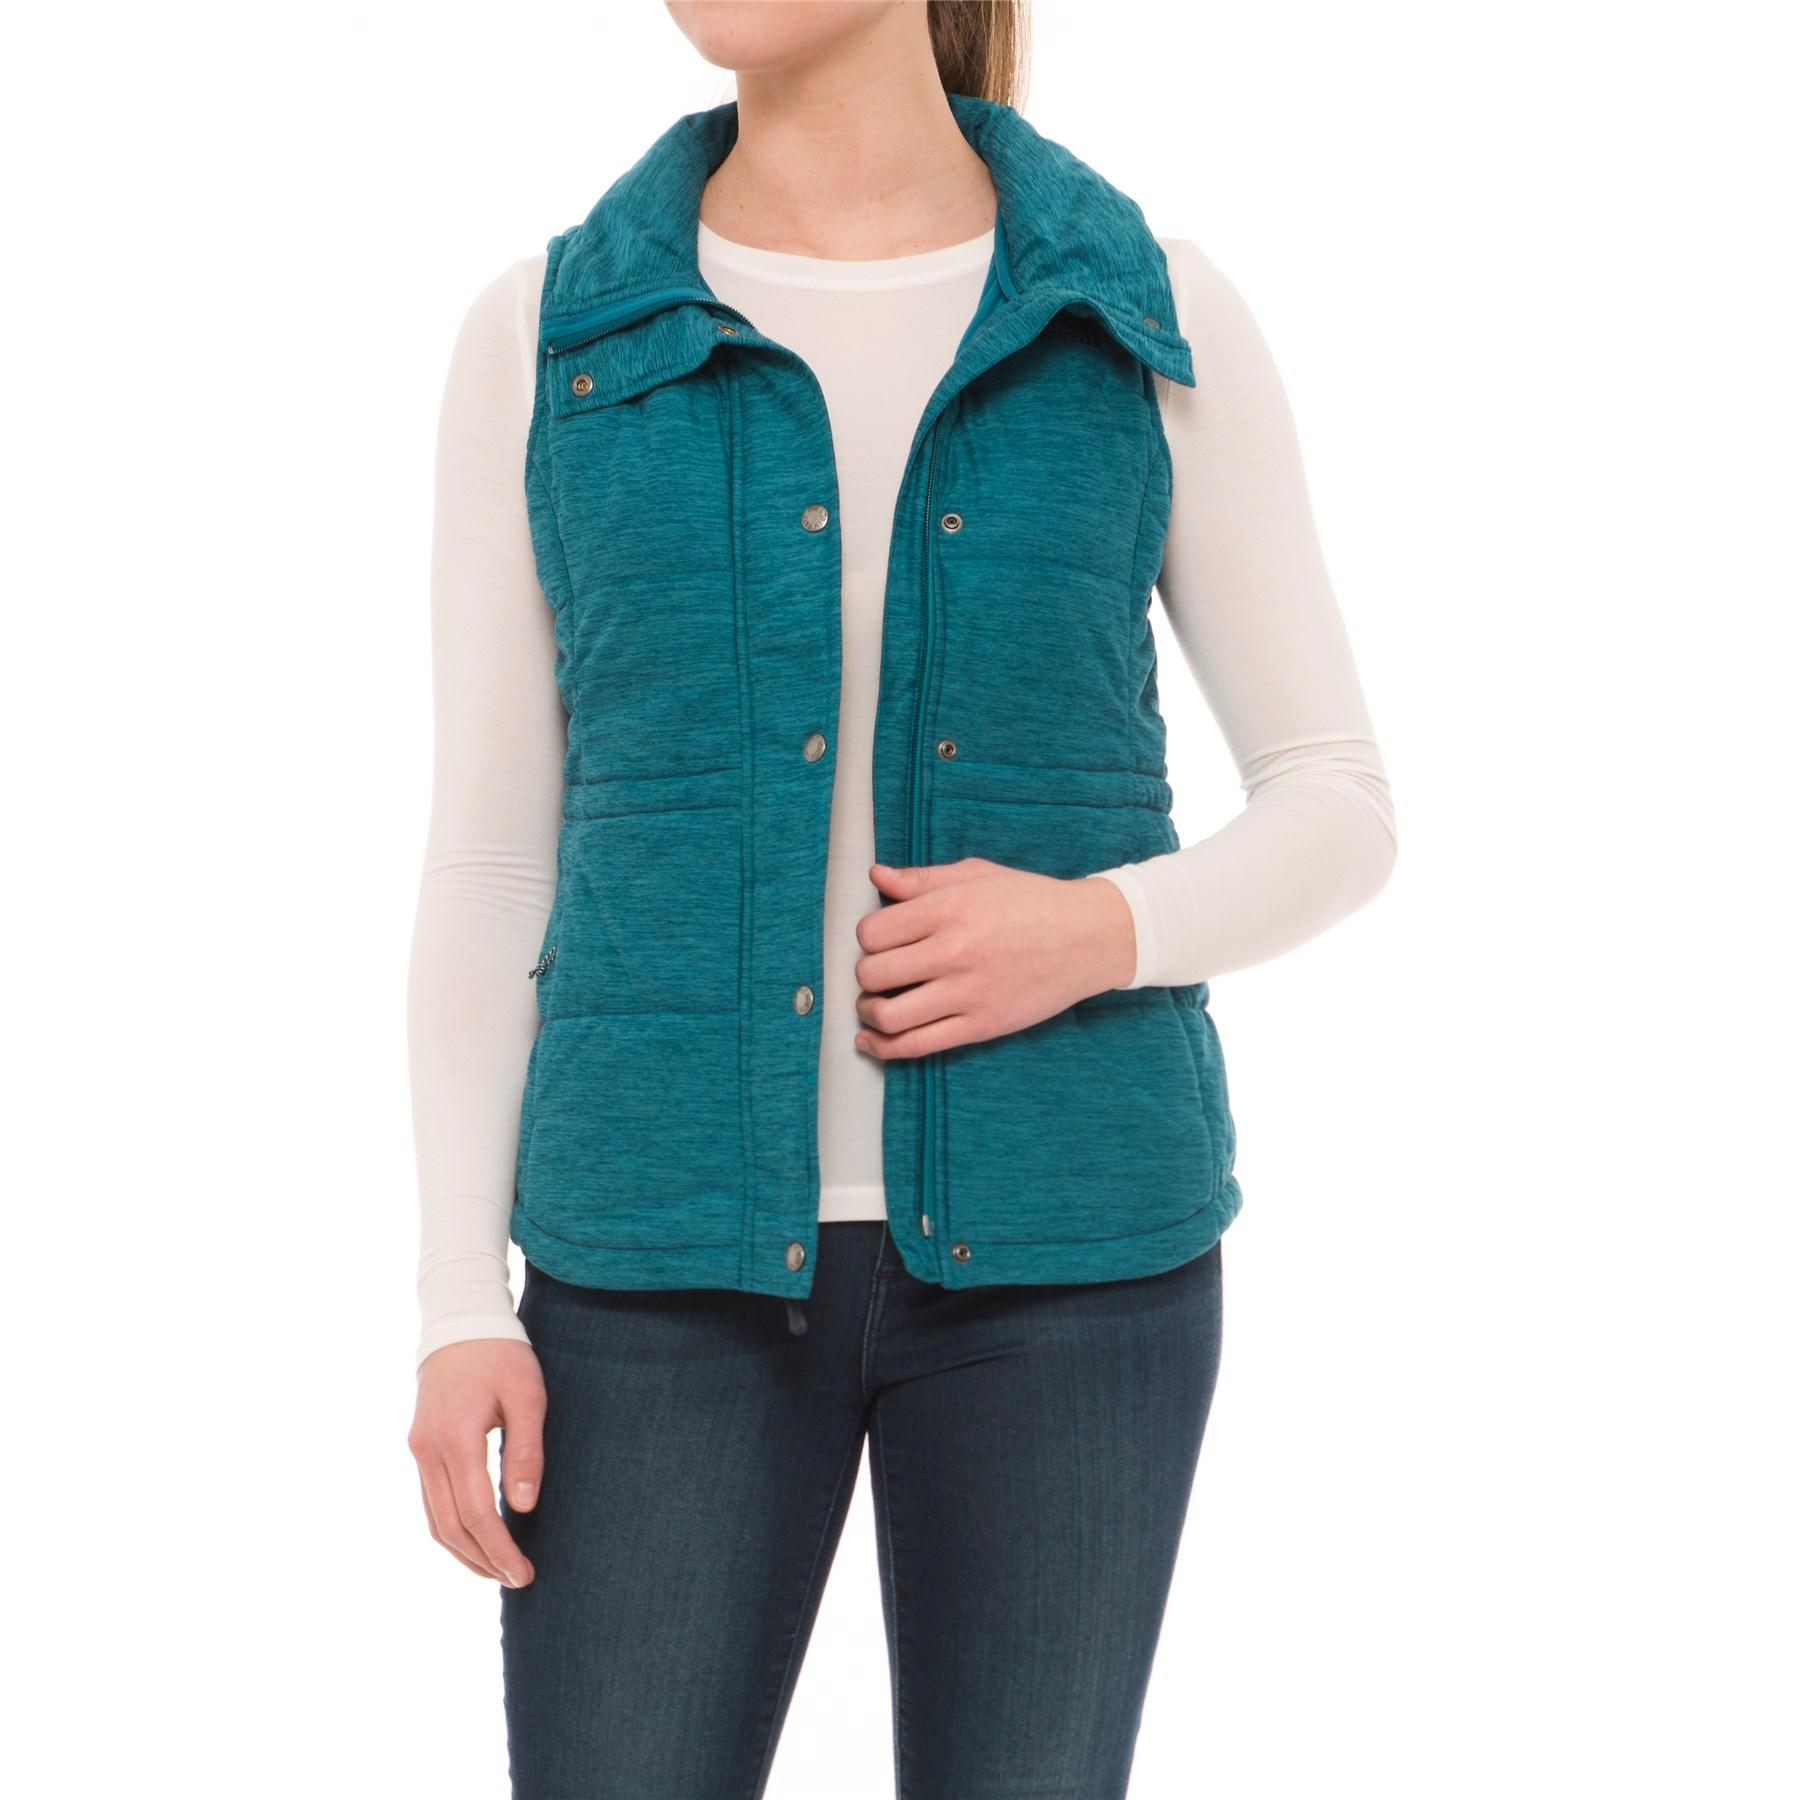 080fcbce610a Lyst - The North Face Pseudio Vest in Blue